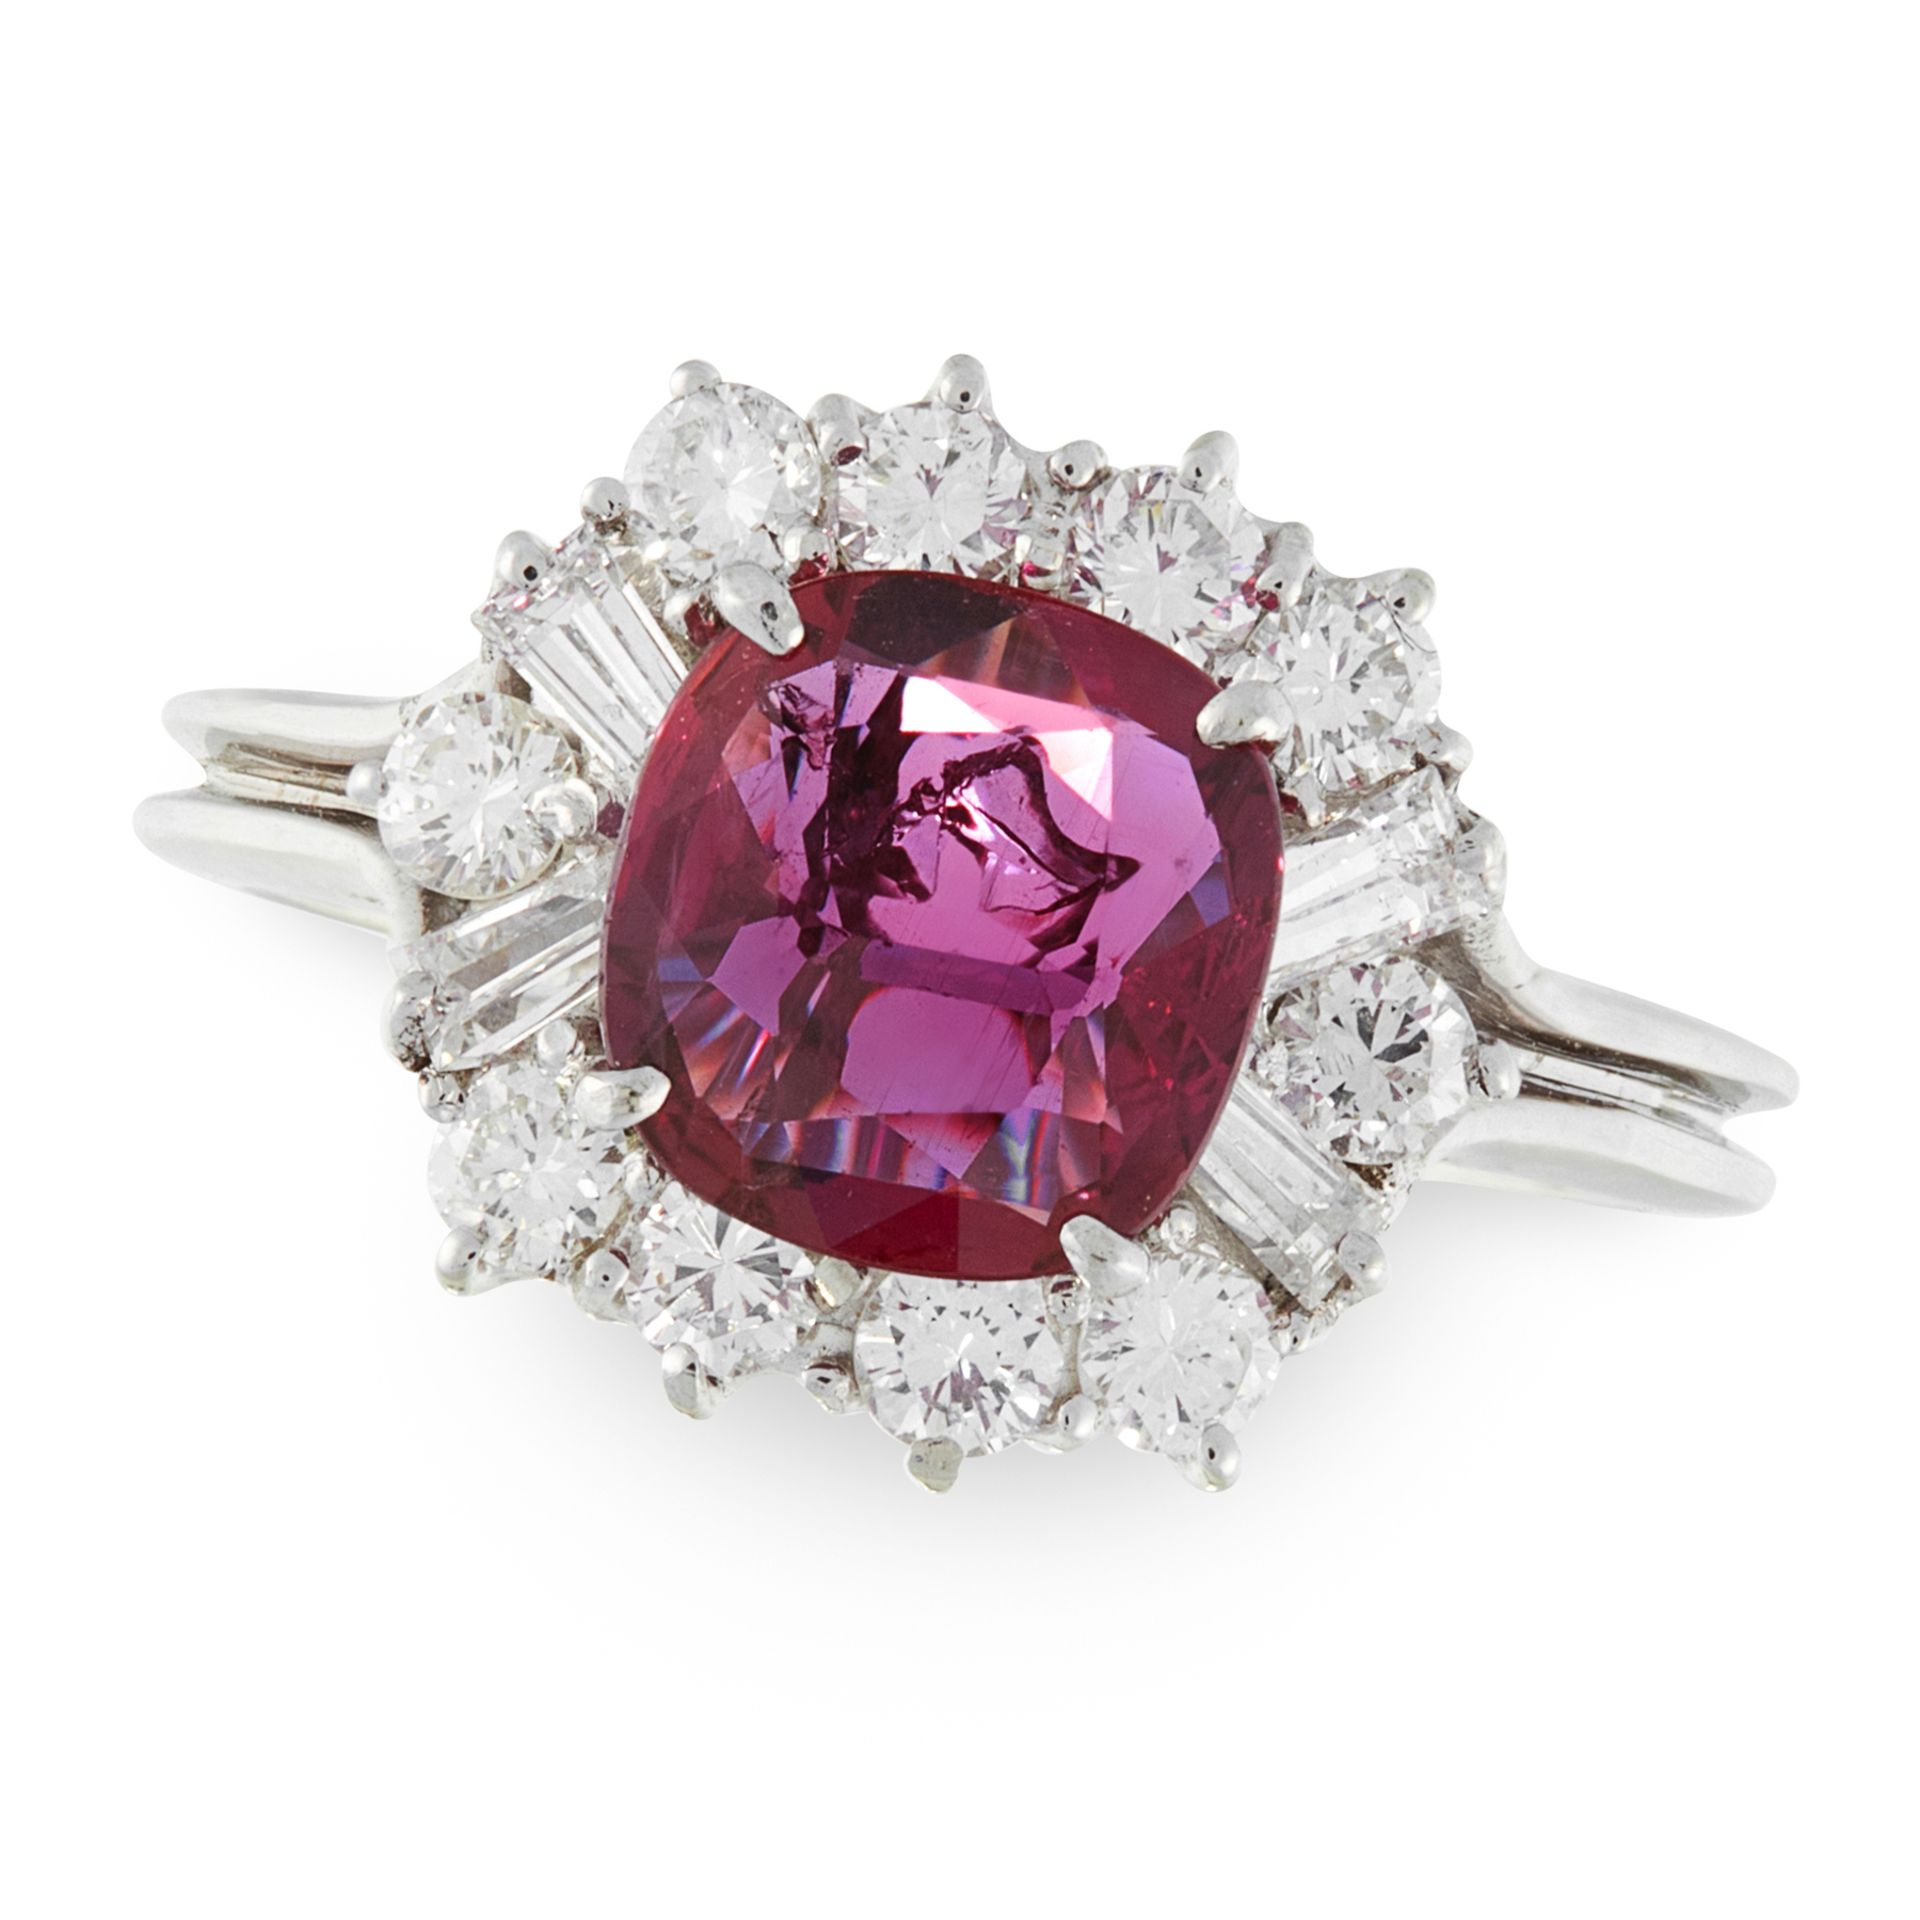 A RUBY AND DIAMOND CLUSTER RING in 18ct white gold, set with a cushion cut ruby of 1.22 carats